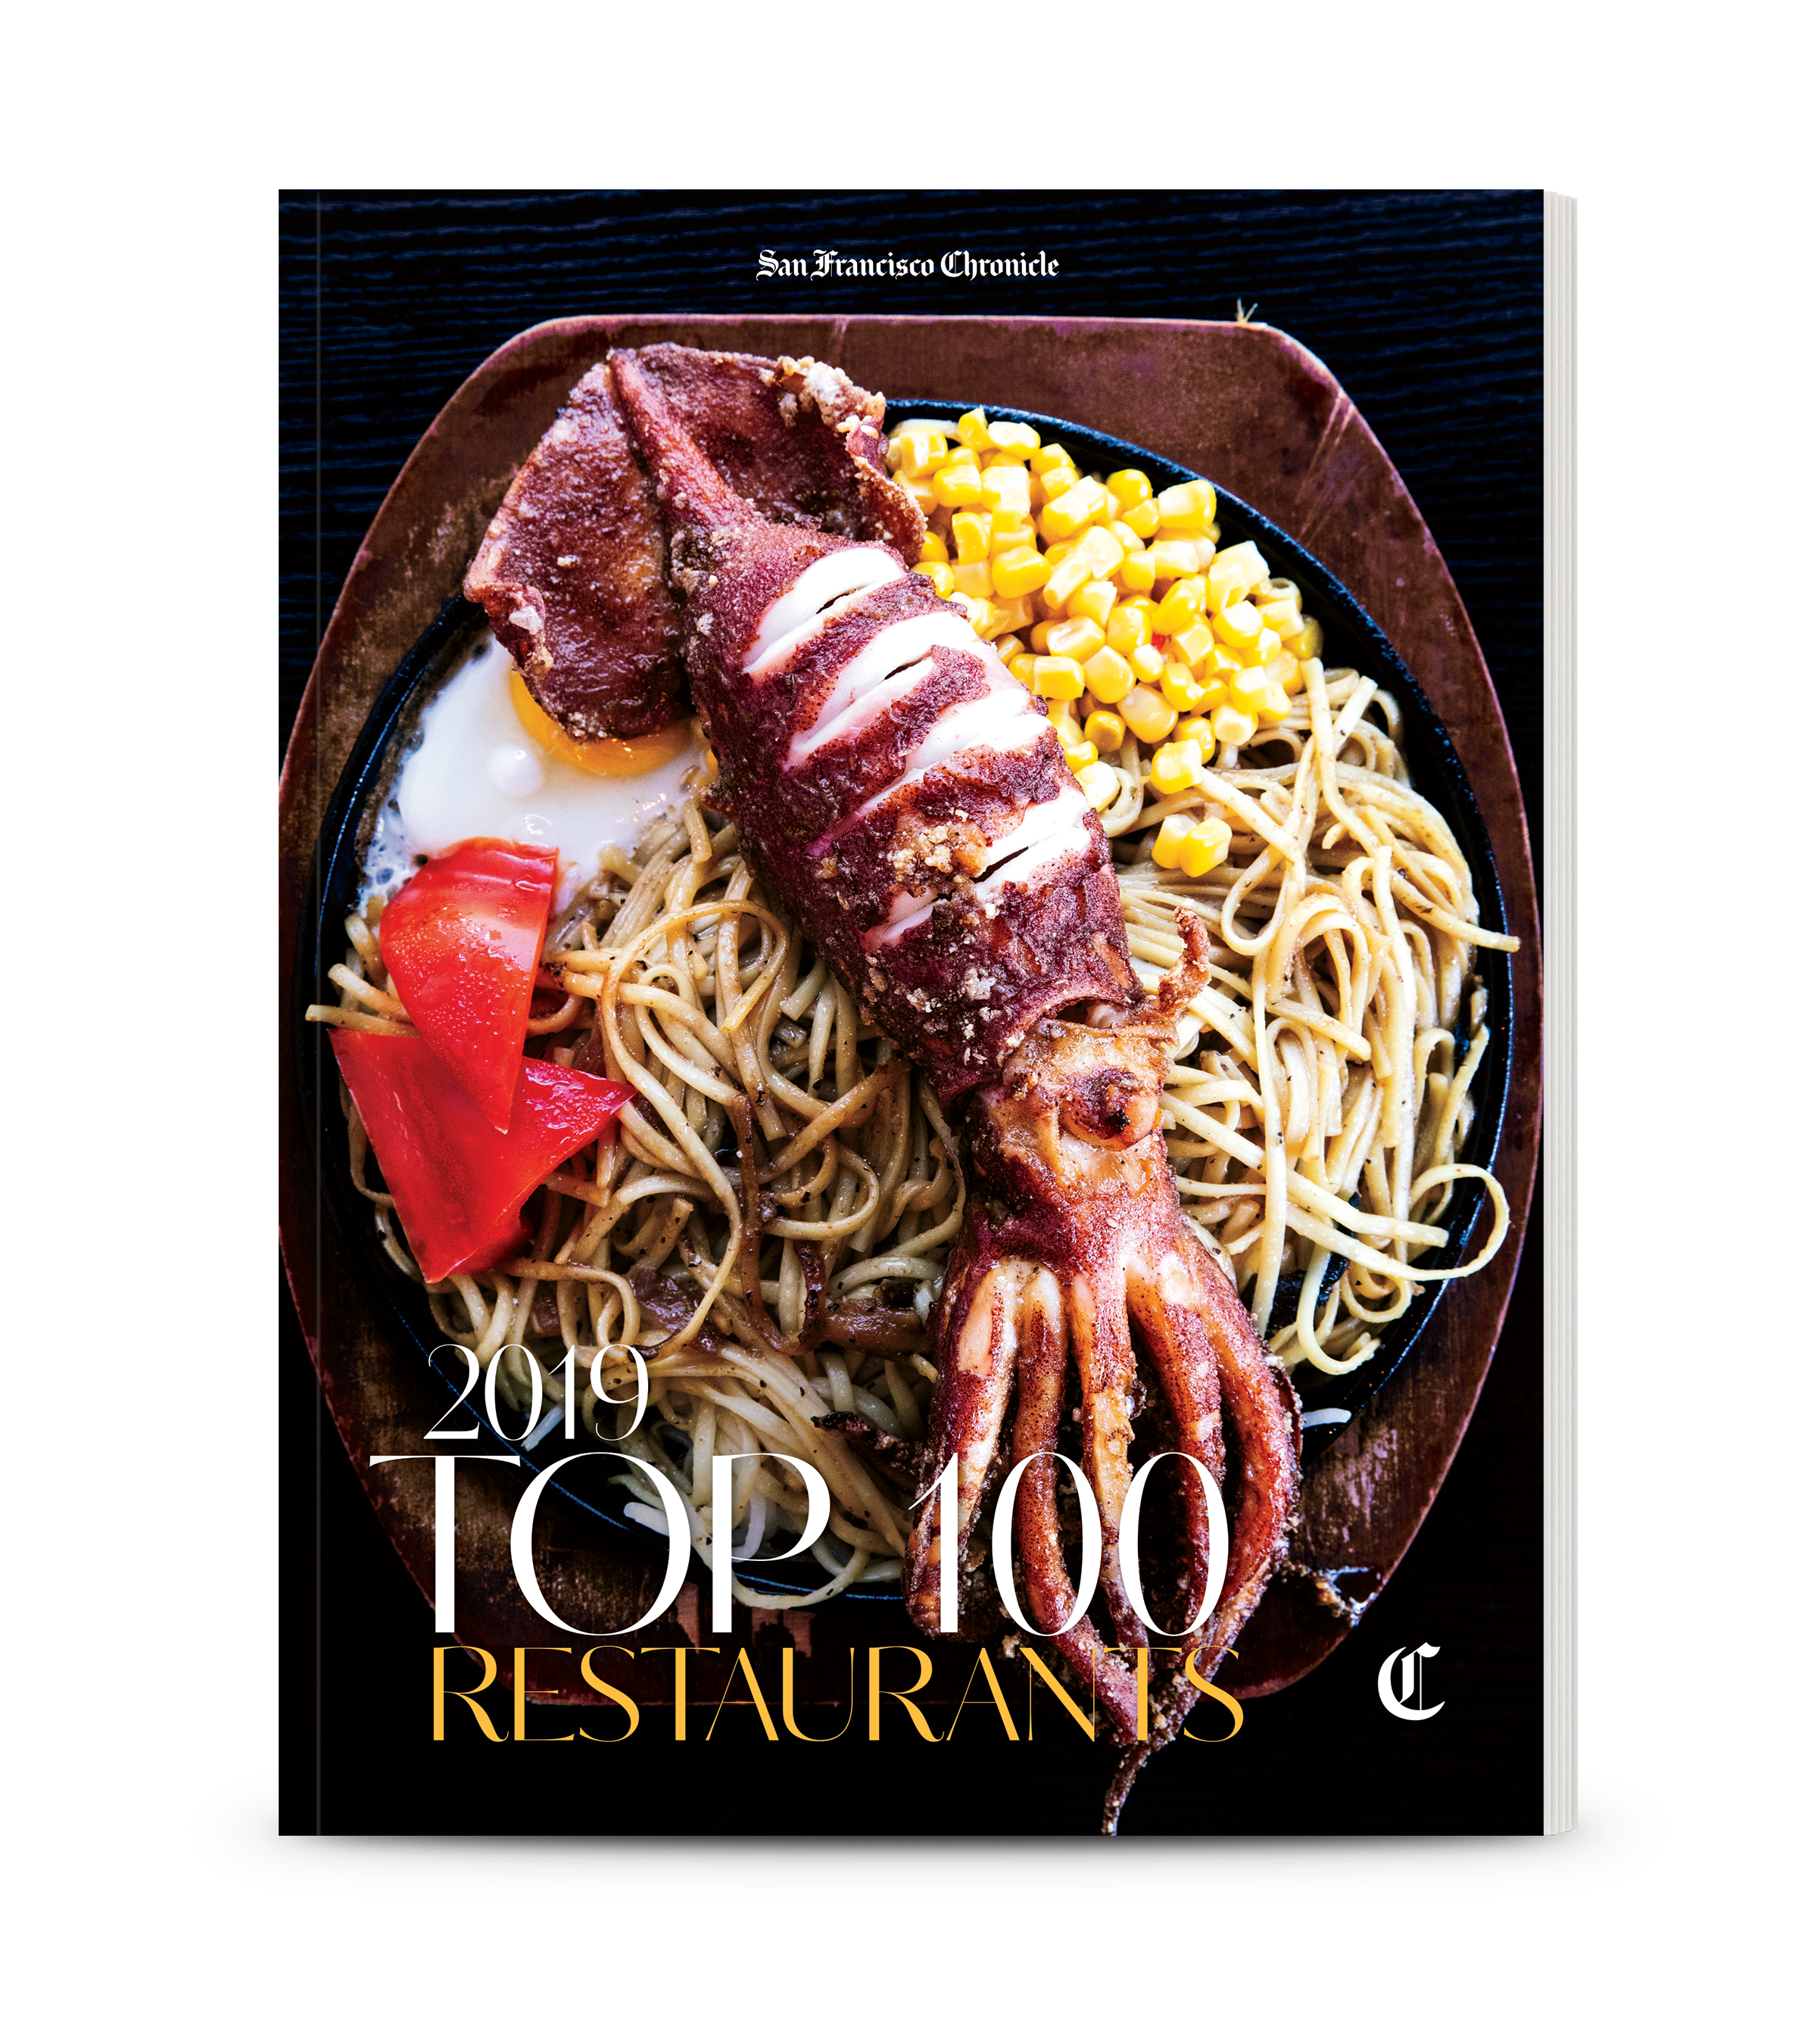 San Francisco Chronicle Top 100 Restaurants 2019